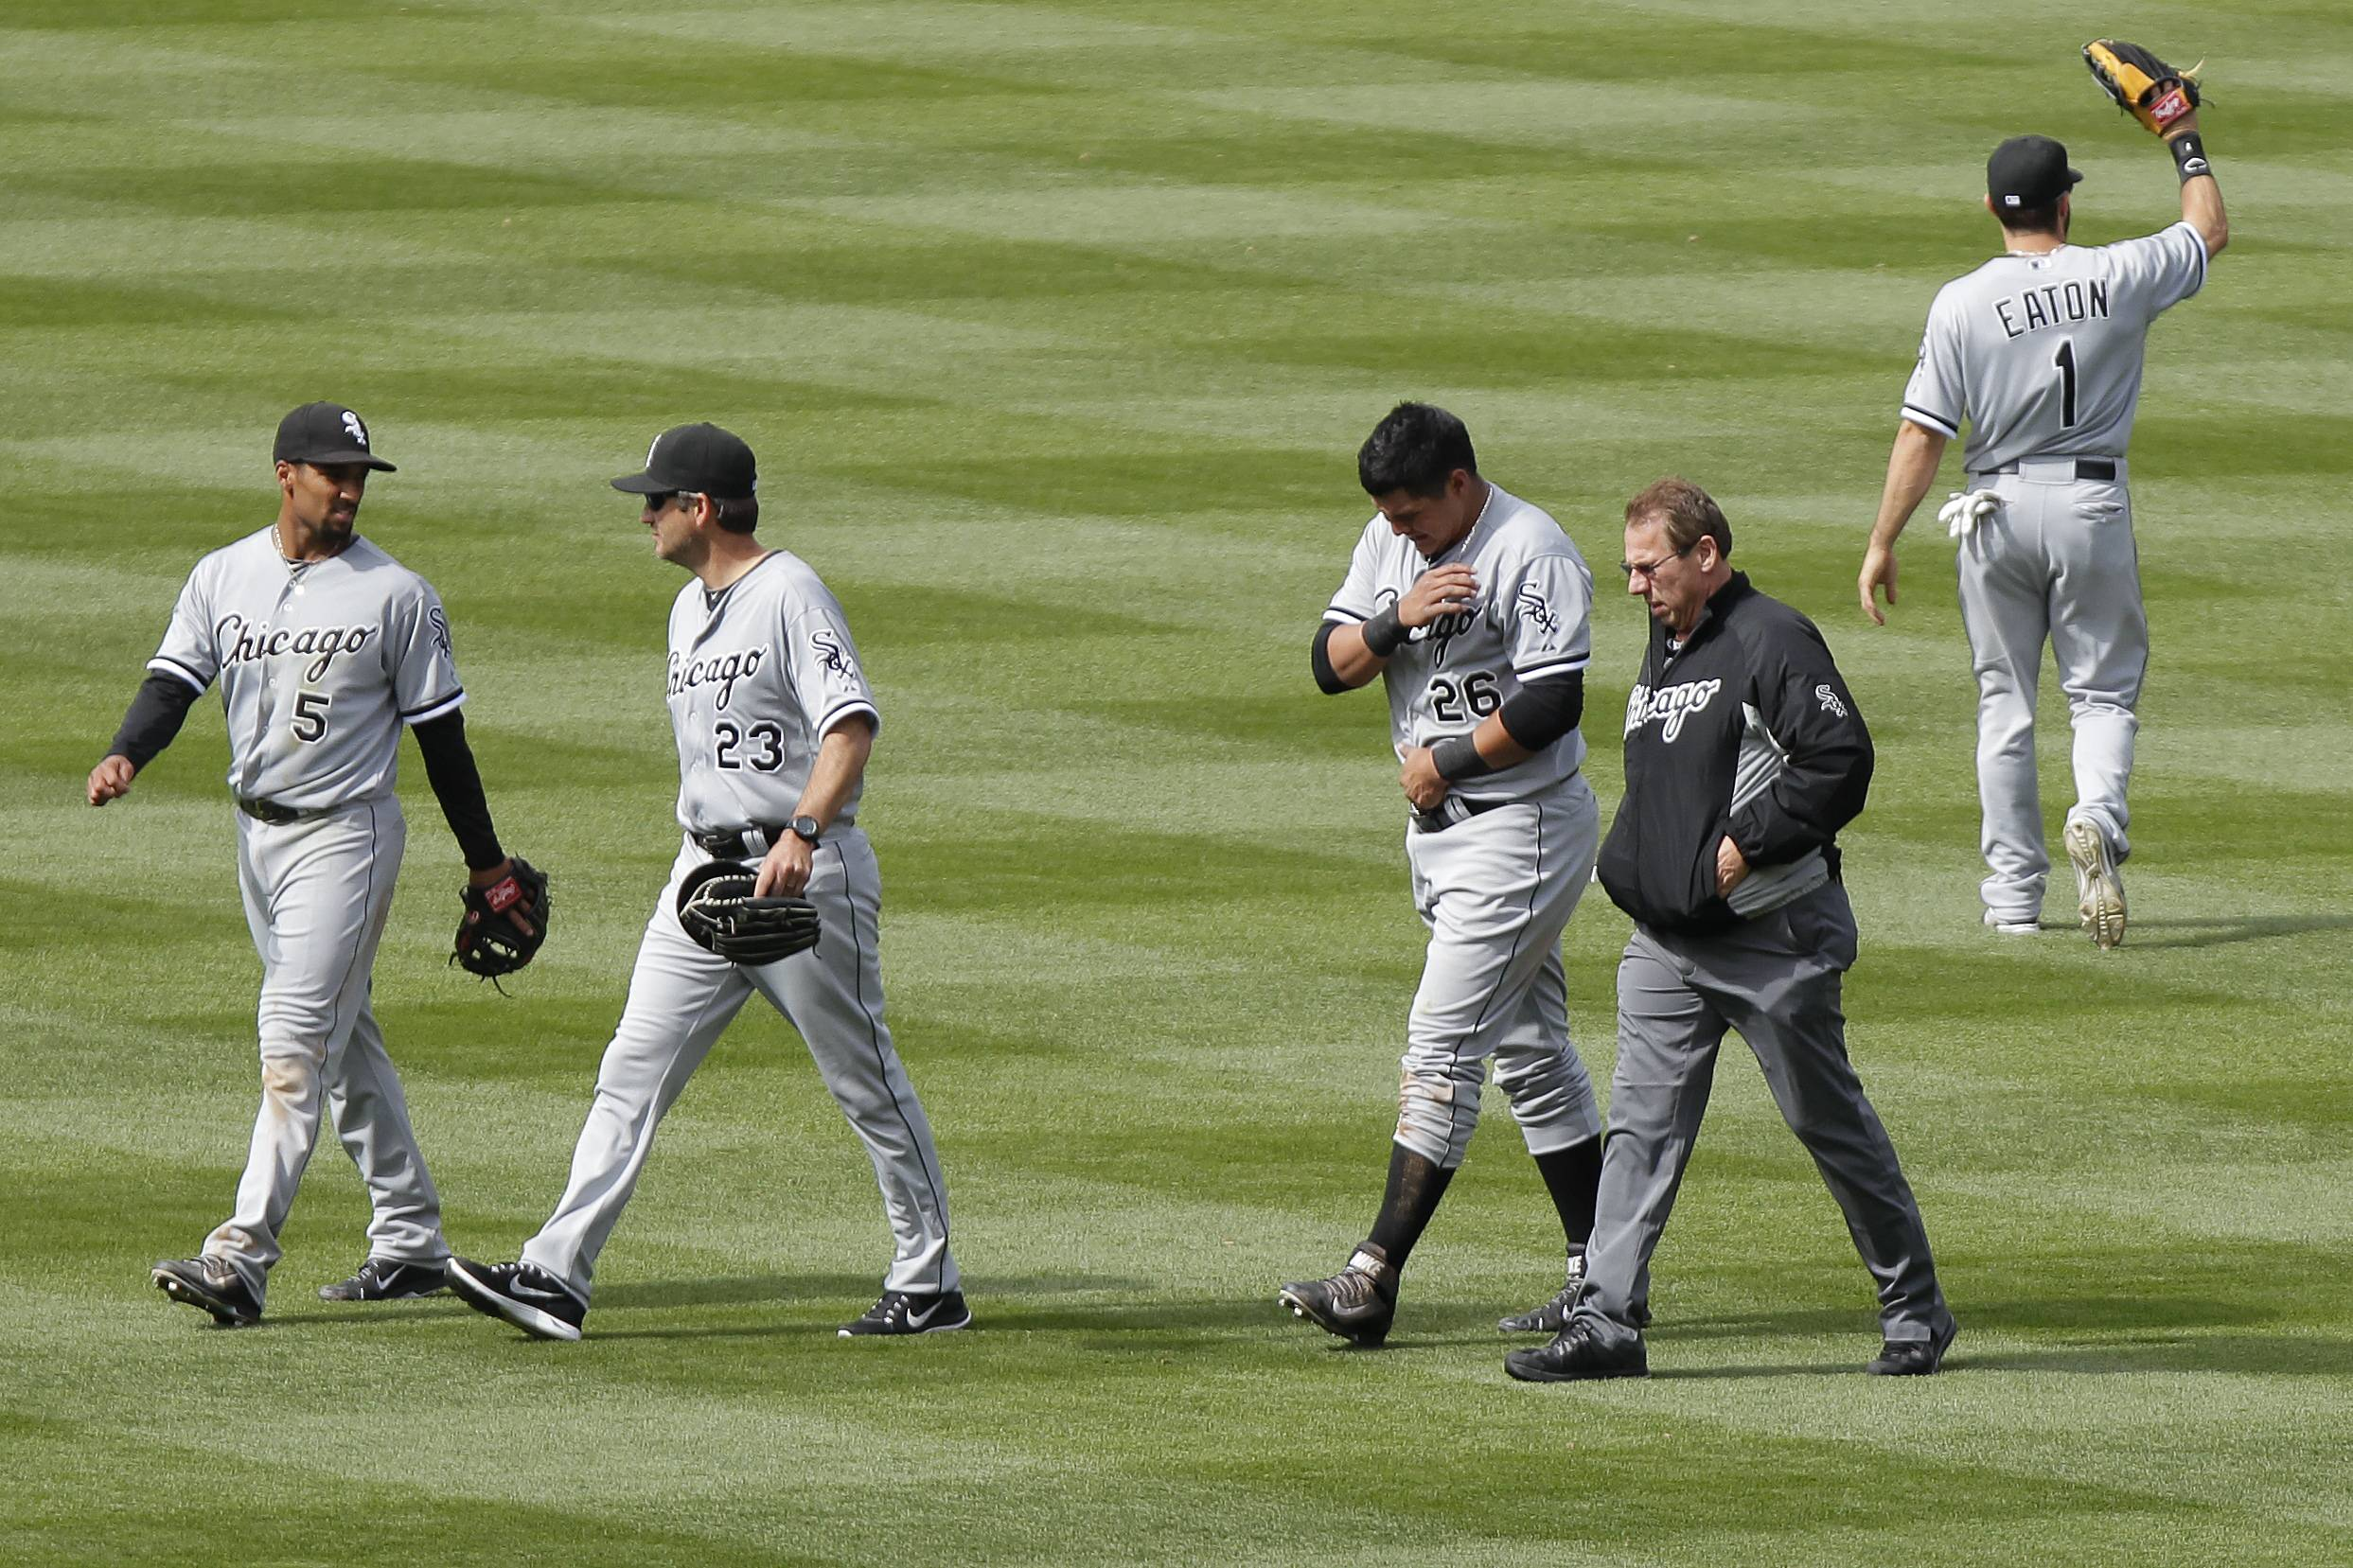 Chicago White Sox athletic trainer Herman Schneider, second from right, escorts Avisail Garcia (26) off the field after Garcia jammed his left shoulder on a diving catch Wednesday. The Sox lost the game, and now will lose Garcia for the rest of the season due to surgery on his left shoulder.